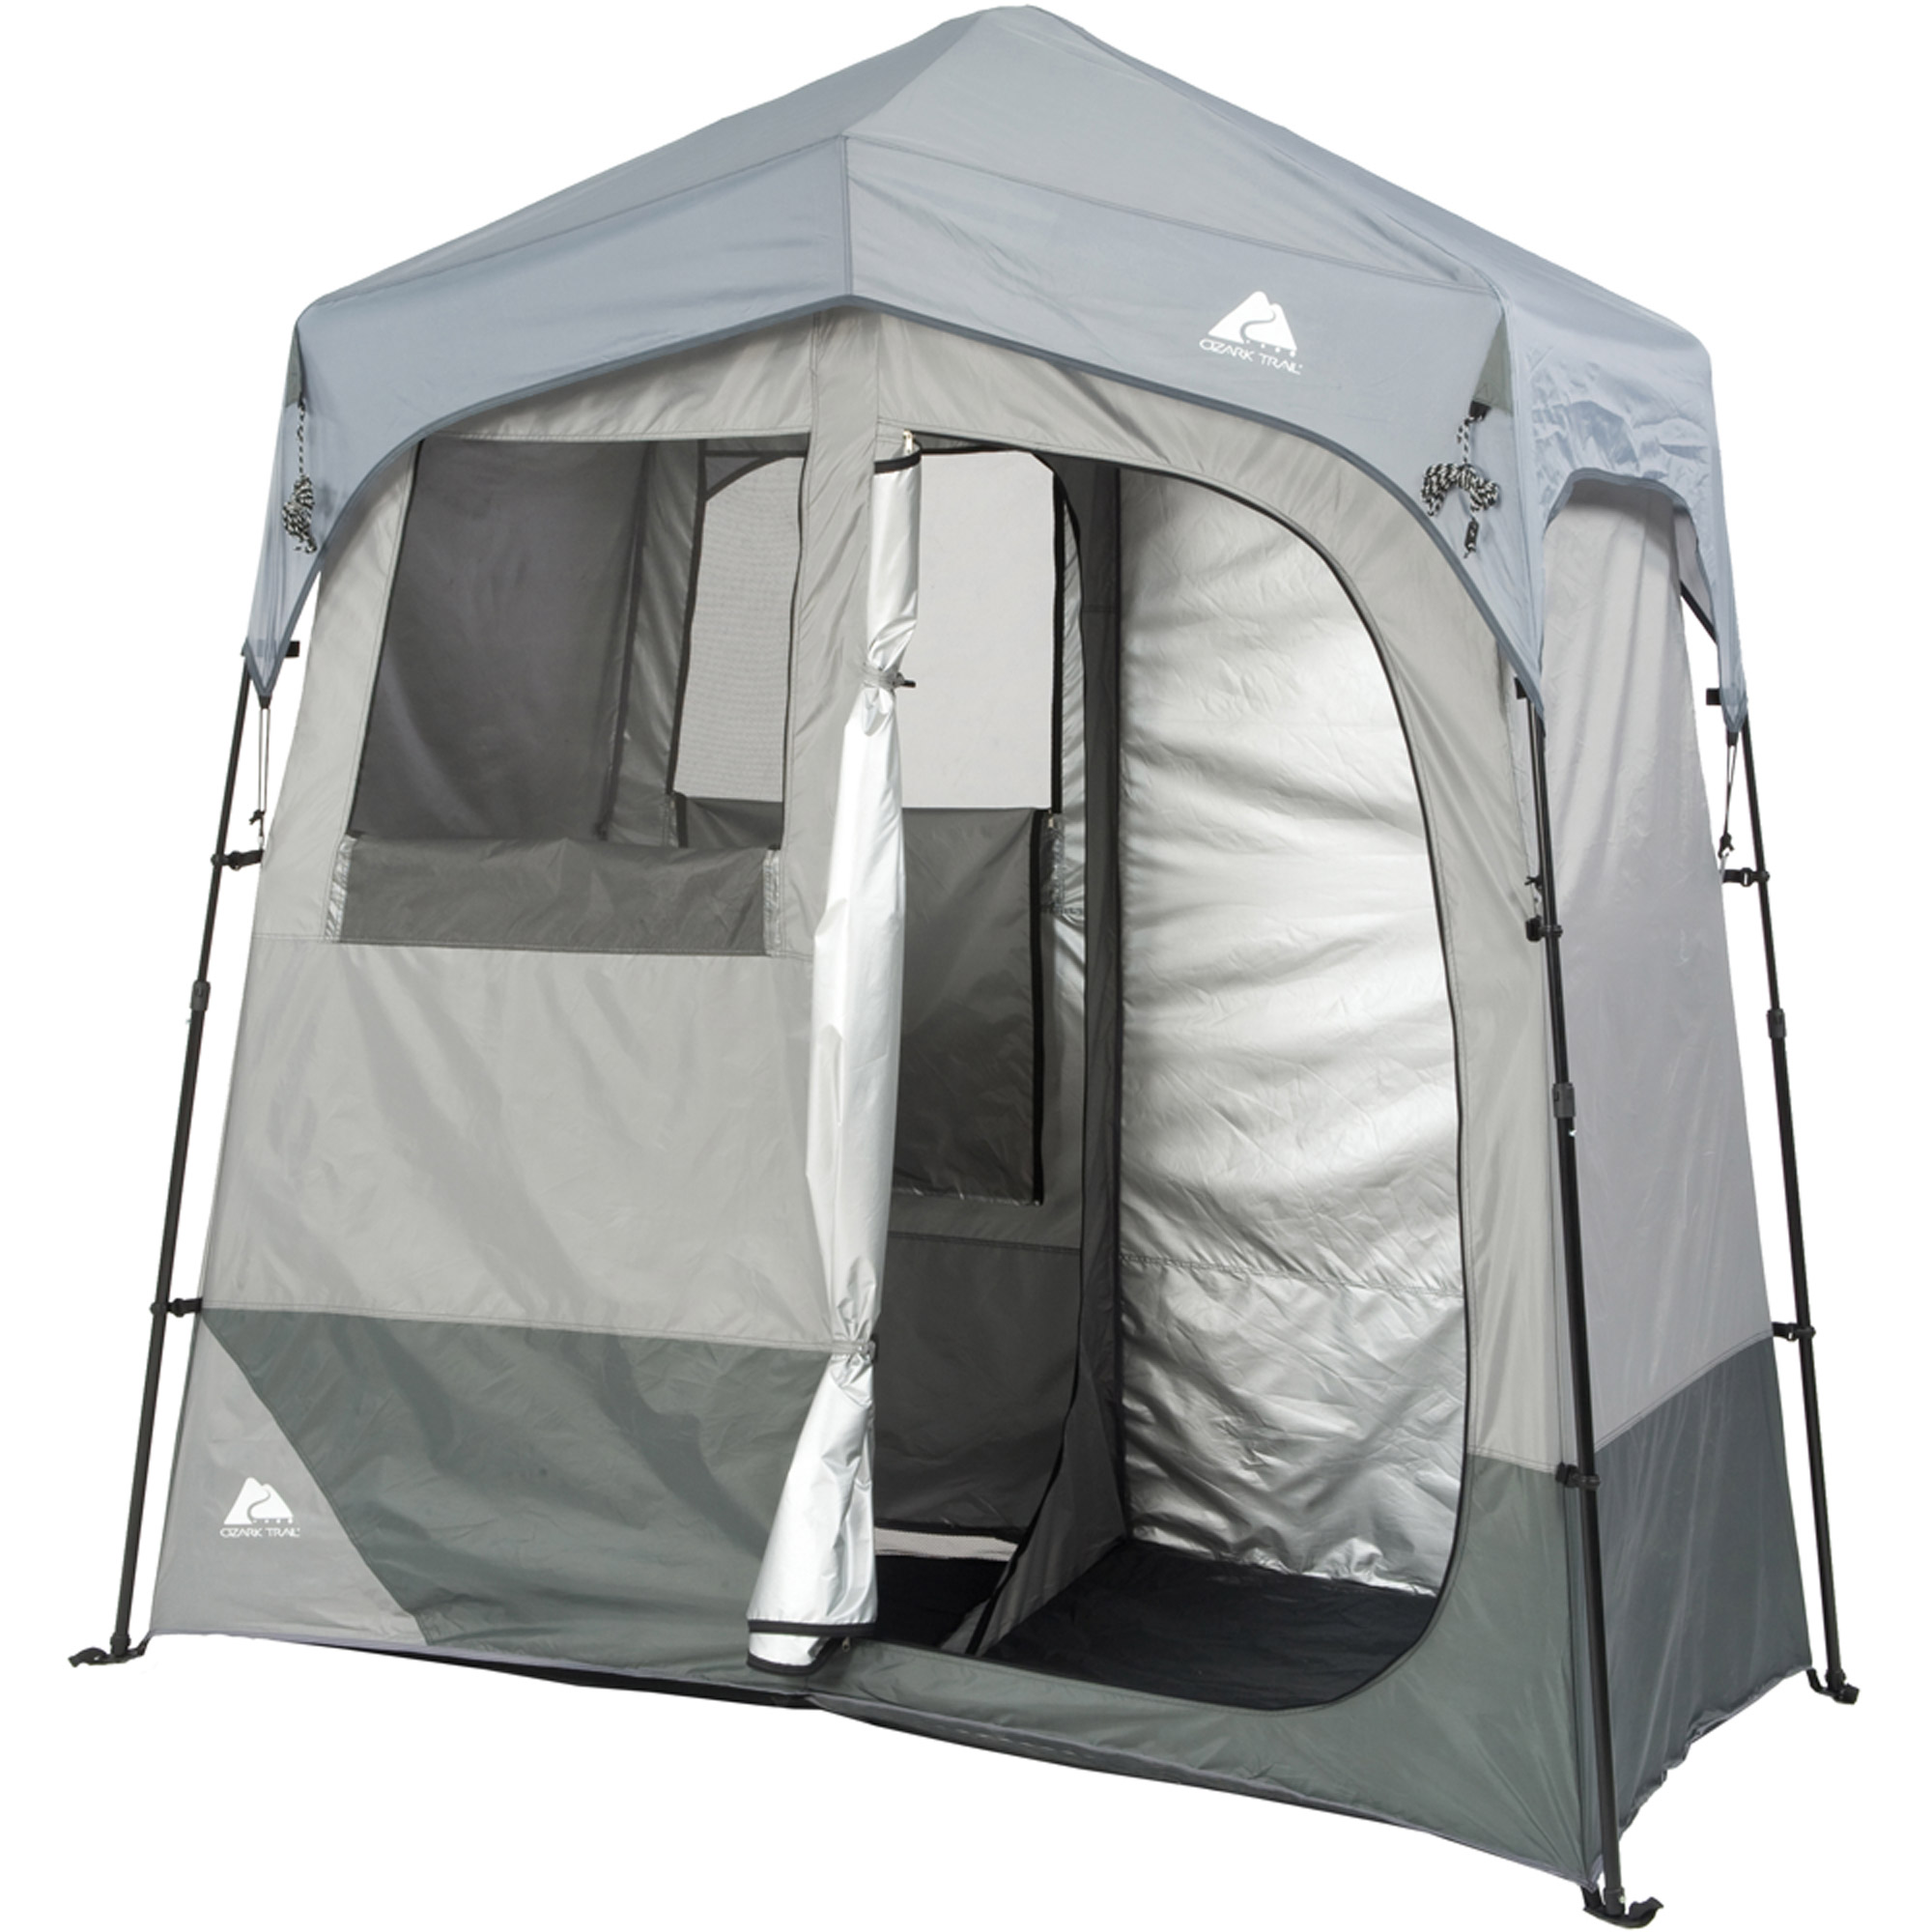 Ozark Trail 2-Room Instant Shower/Utility Shelter  sc 1 st  Walmart & Ozark Trail 2-Room Instant Shower/Utility Shelter - Walmart.com